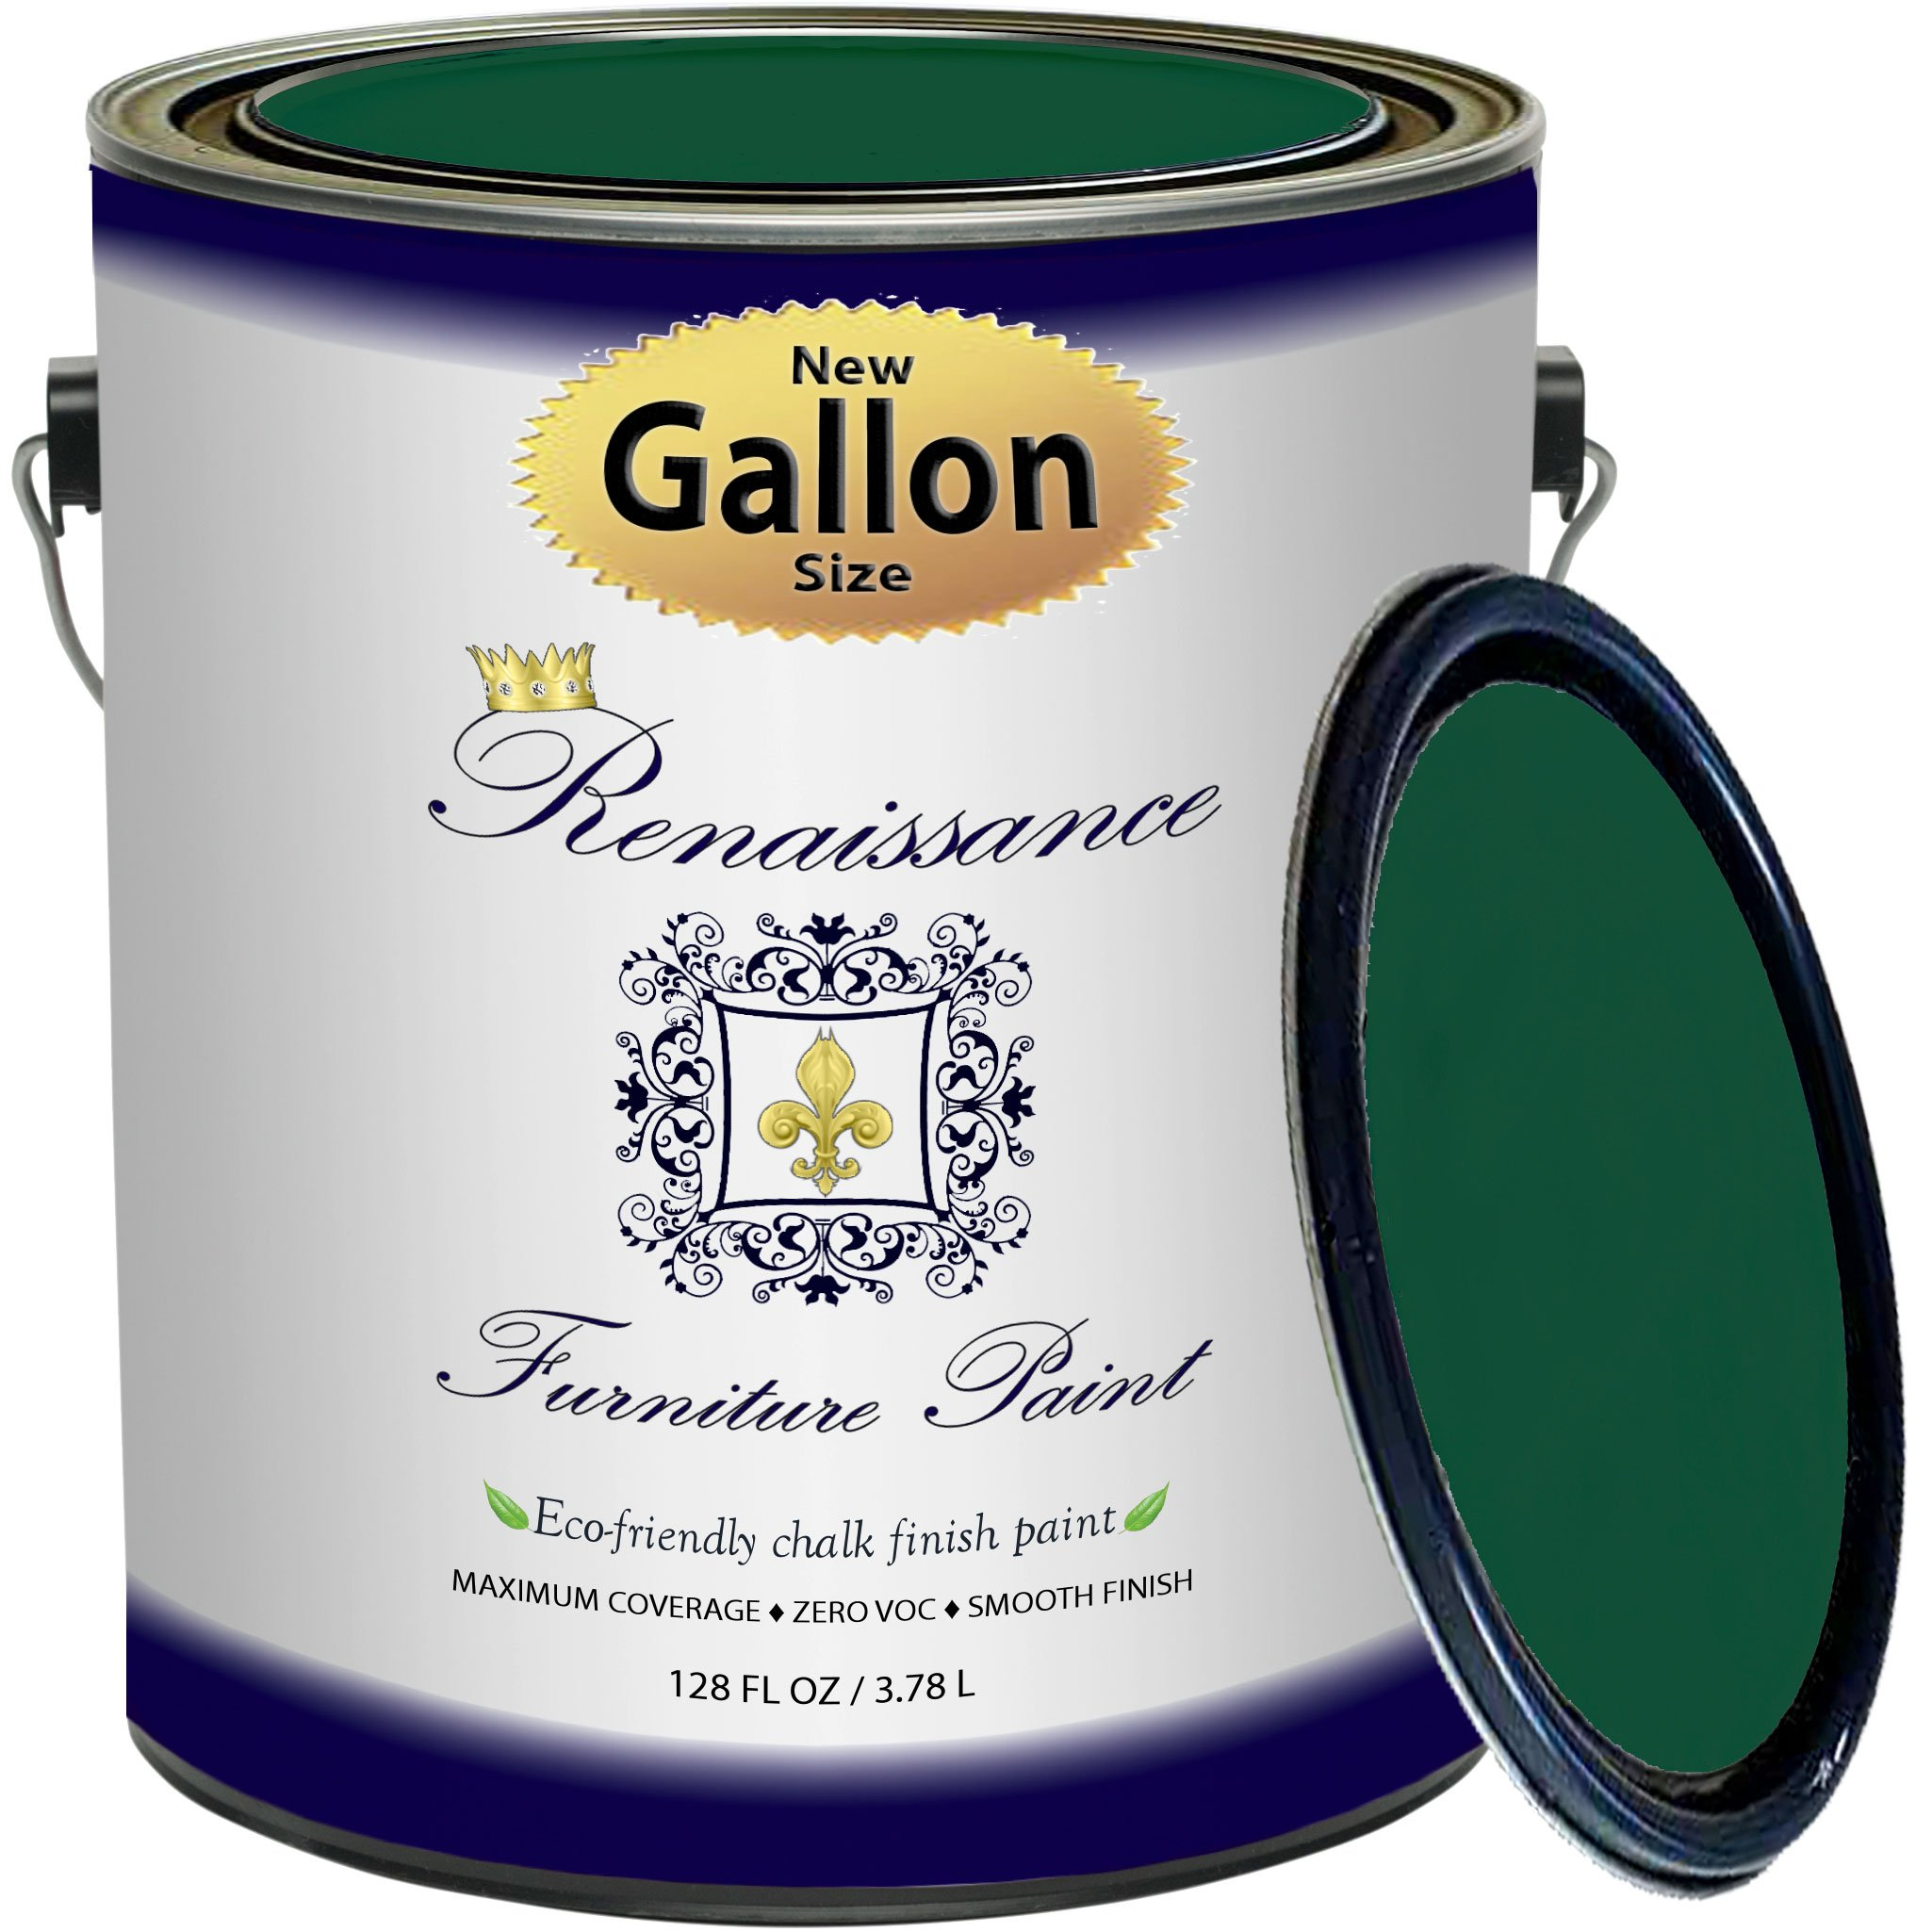 Renaissance Chalk Finish Paint - Viridian - Gallon (128oz) - Chalk Furniture & Cabinet Paint - Non Toxic, Eco-Friendly, Superior Coverage